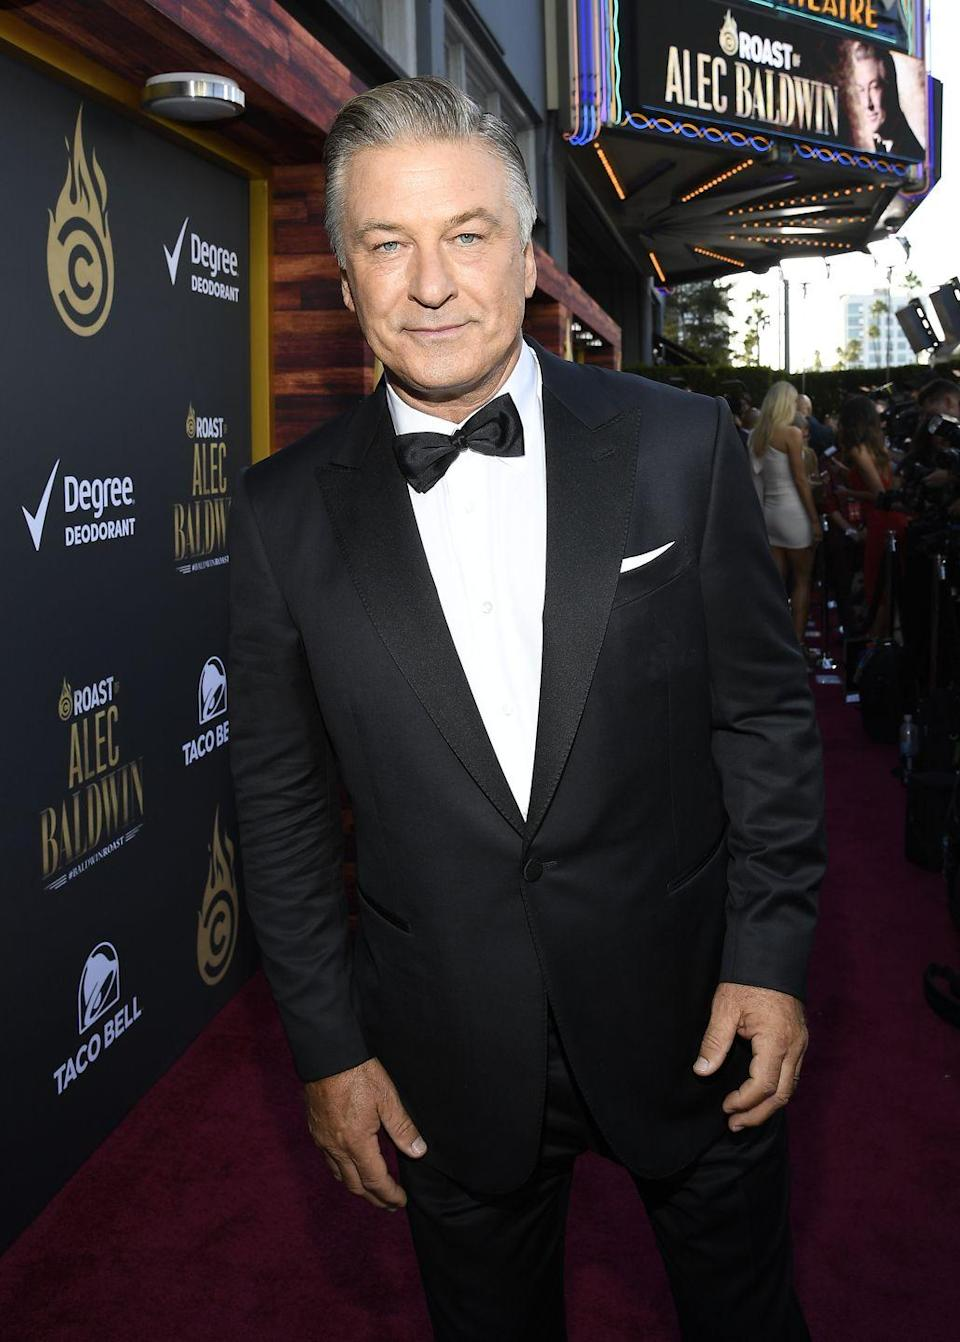 "<p>The two famous actors locked lips after Jennifer Aniston appeared on multiple episodes of <em>30 Rock</em> as someone who was overly obsessed with Baldwin's character, Jack Donaghy.</p><p>Baldwin <a href=""https://www.digitalspy.com/showbiz/a136083/baldwin-calls-aniston-kiss-painful/"" rel=""nofollow noopener"" target=""_blank"" data-ylk=""slk:explained"" class=""link rapid-noclick-resp"">explained</a> to <em>New York Magazine</em> that he did not enjoy the kissing scenes with the <em>Friends</em> alum. ""It was painful. I mean, every man who's had to make out with her in TV and movies—I don't know how they do it.""</p>"